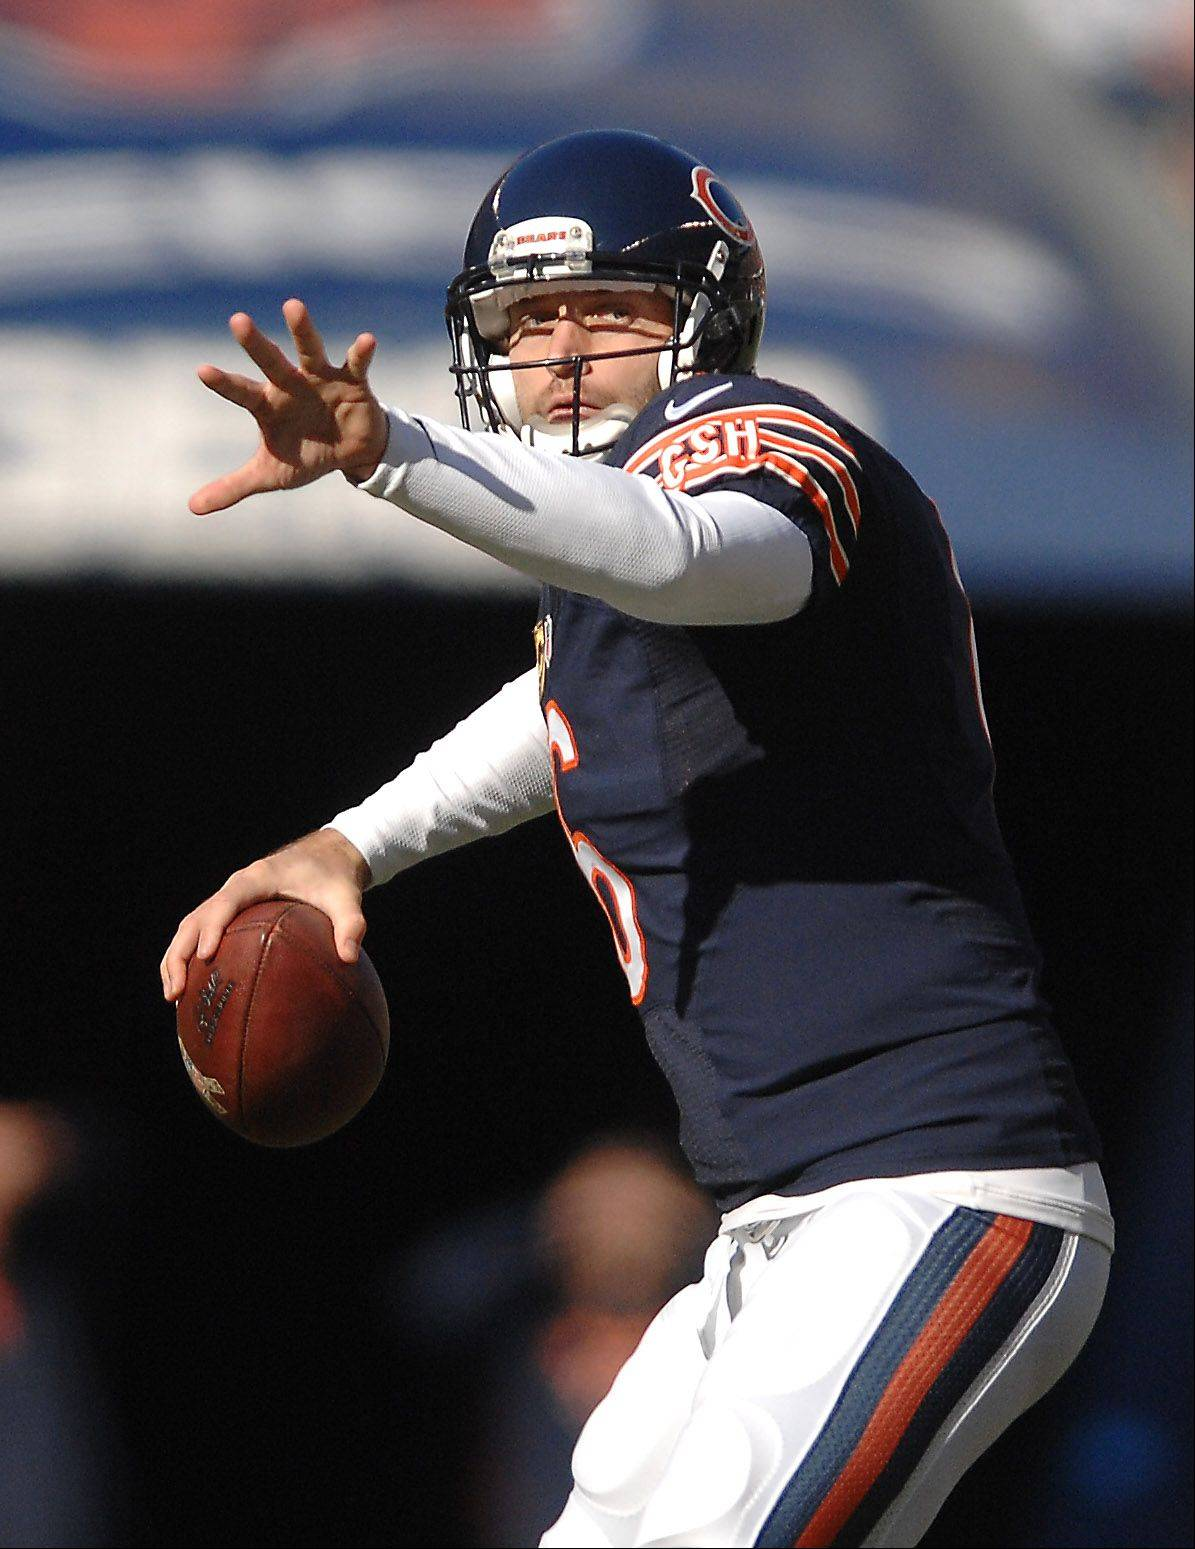 Bears' Cutler, Trestman a fascinating study